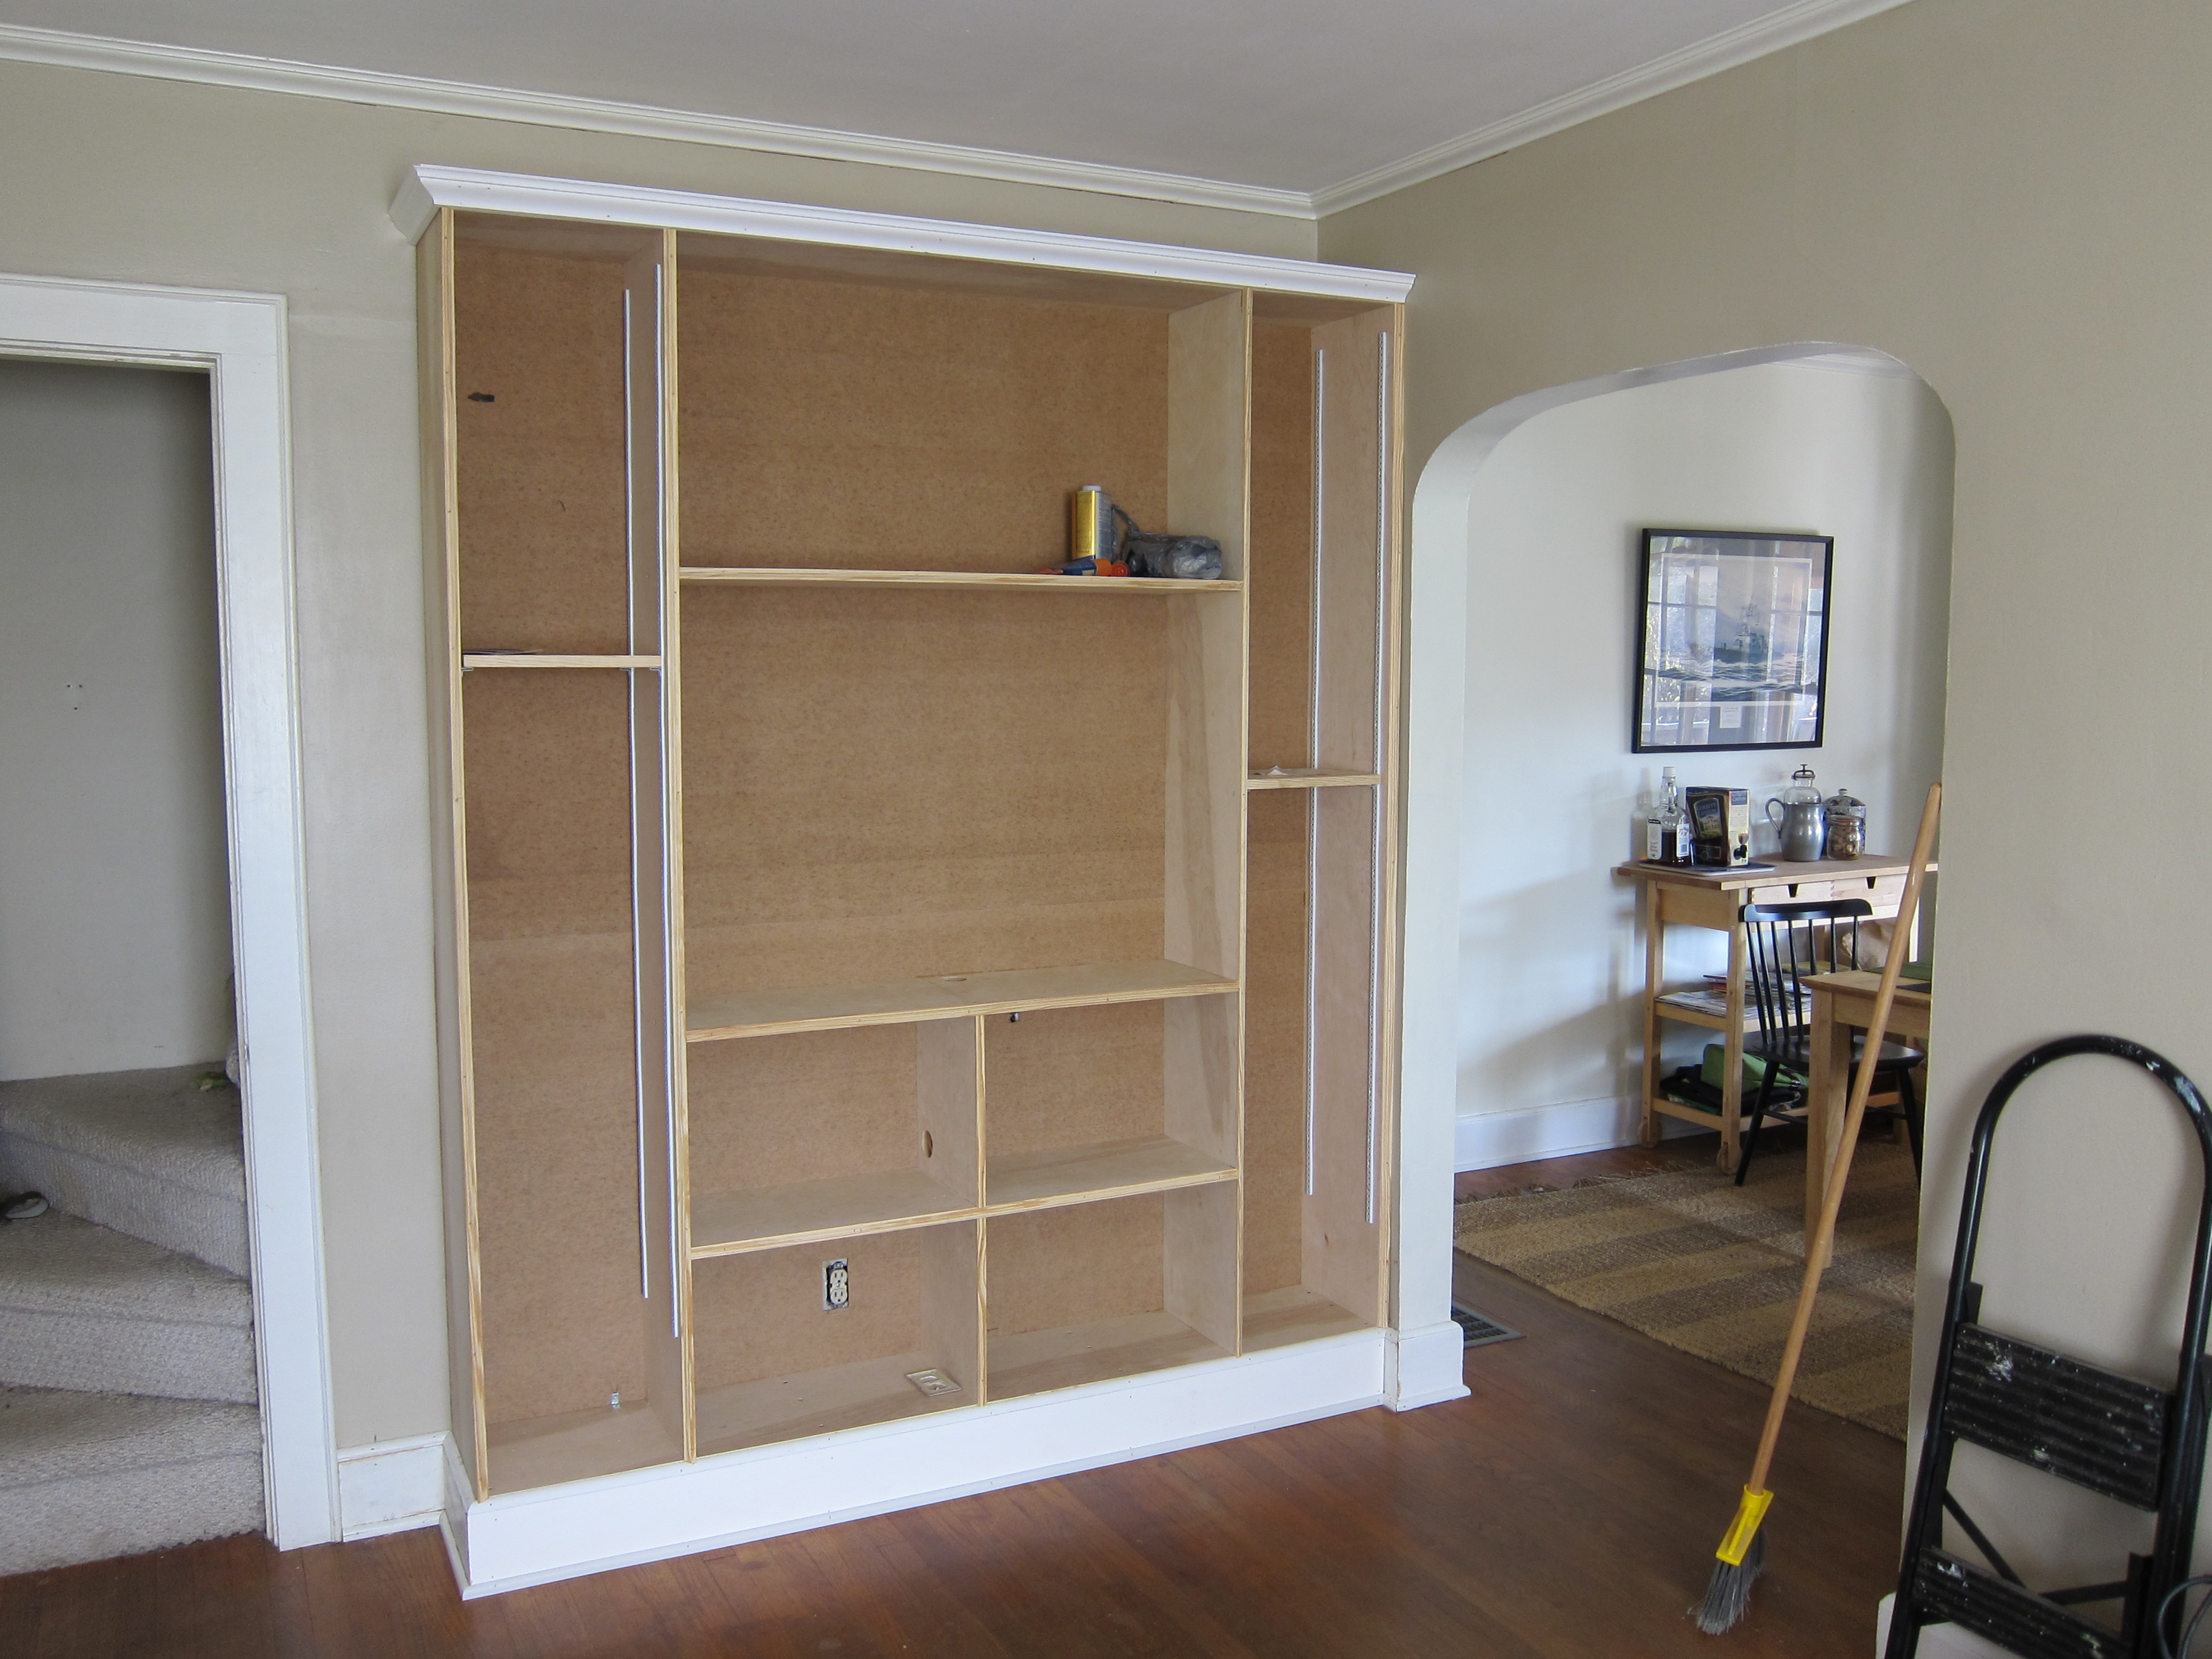 How To Build Wooden Shelves For Walls